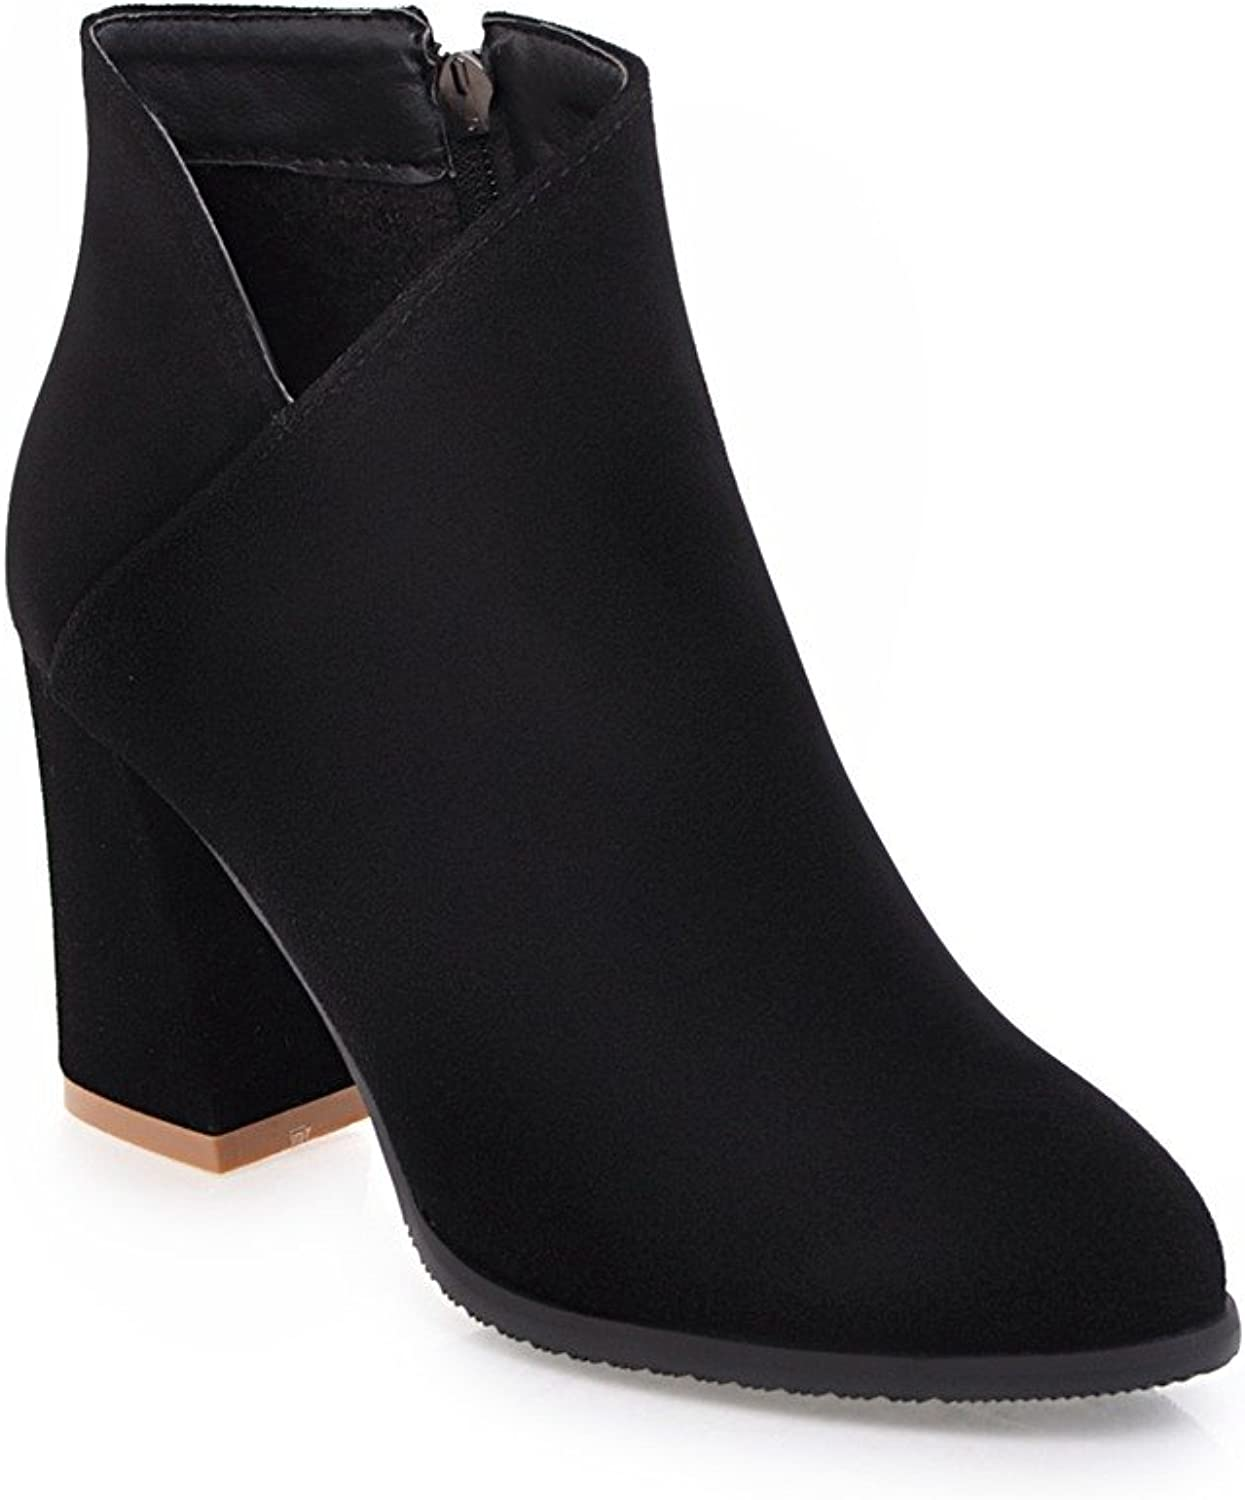 BalaMasa Womens High-Heels Zipper Closed-Toe Solid Pointed-Toe Black Suede Boots ABL09651 - 7.5 B(M) US